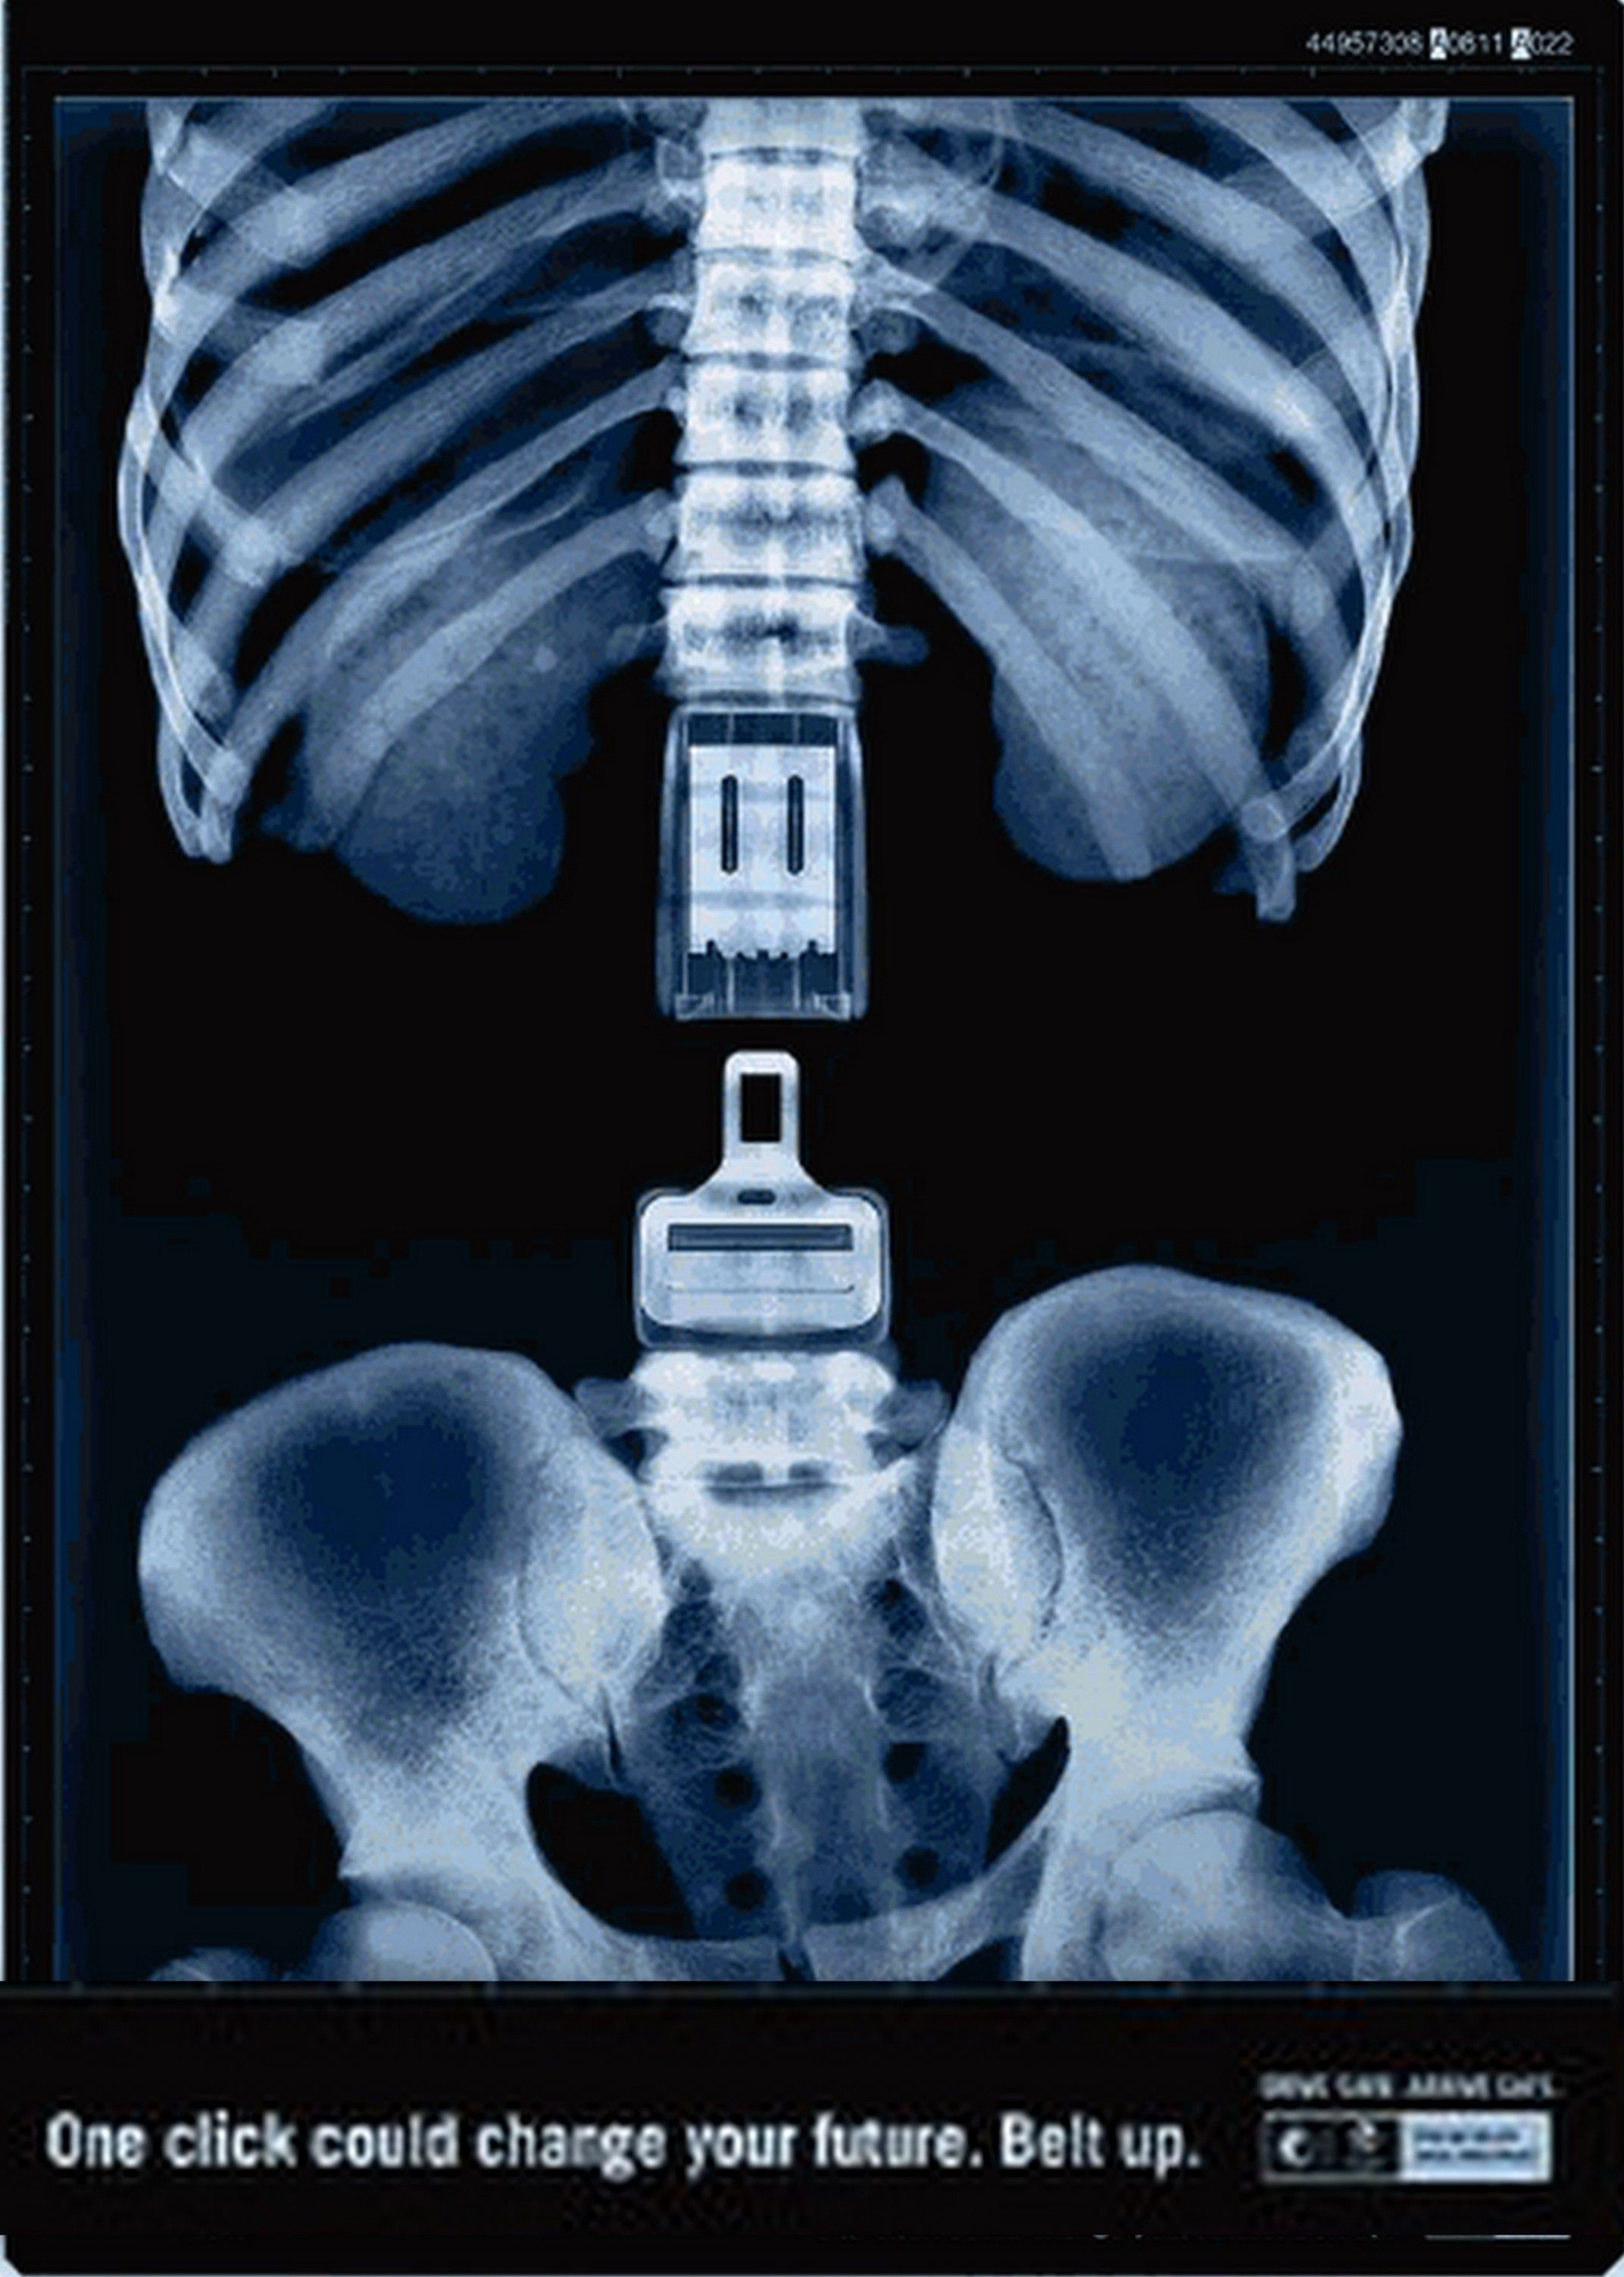 Advertisement shows how important it is to wear a seat belt. Quite graphic but tells everyone the disadvantages if you don't wear one. Makes people think about it as they need to think about wearing a seatbelt.